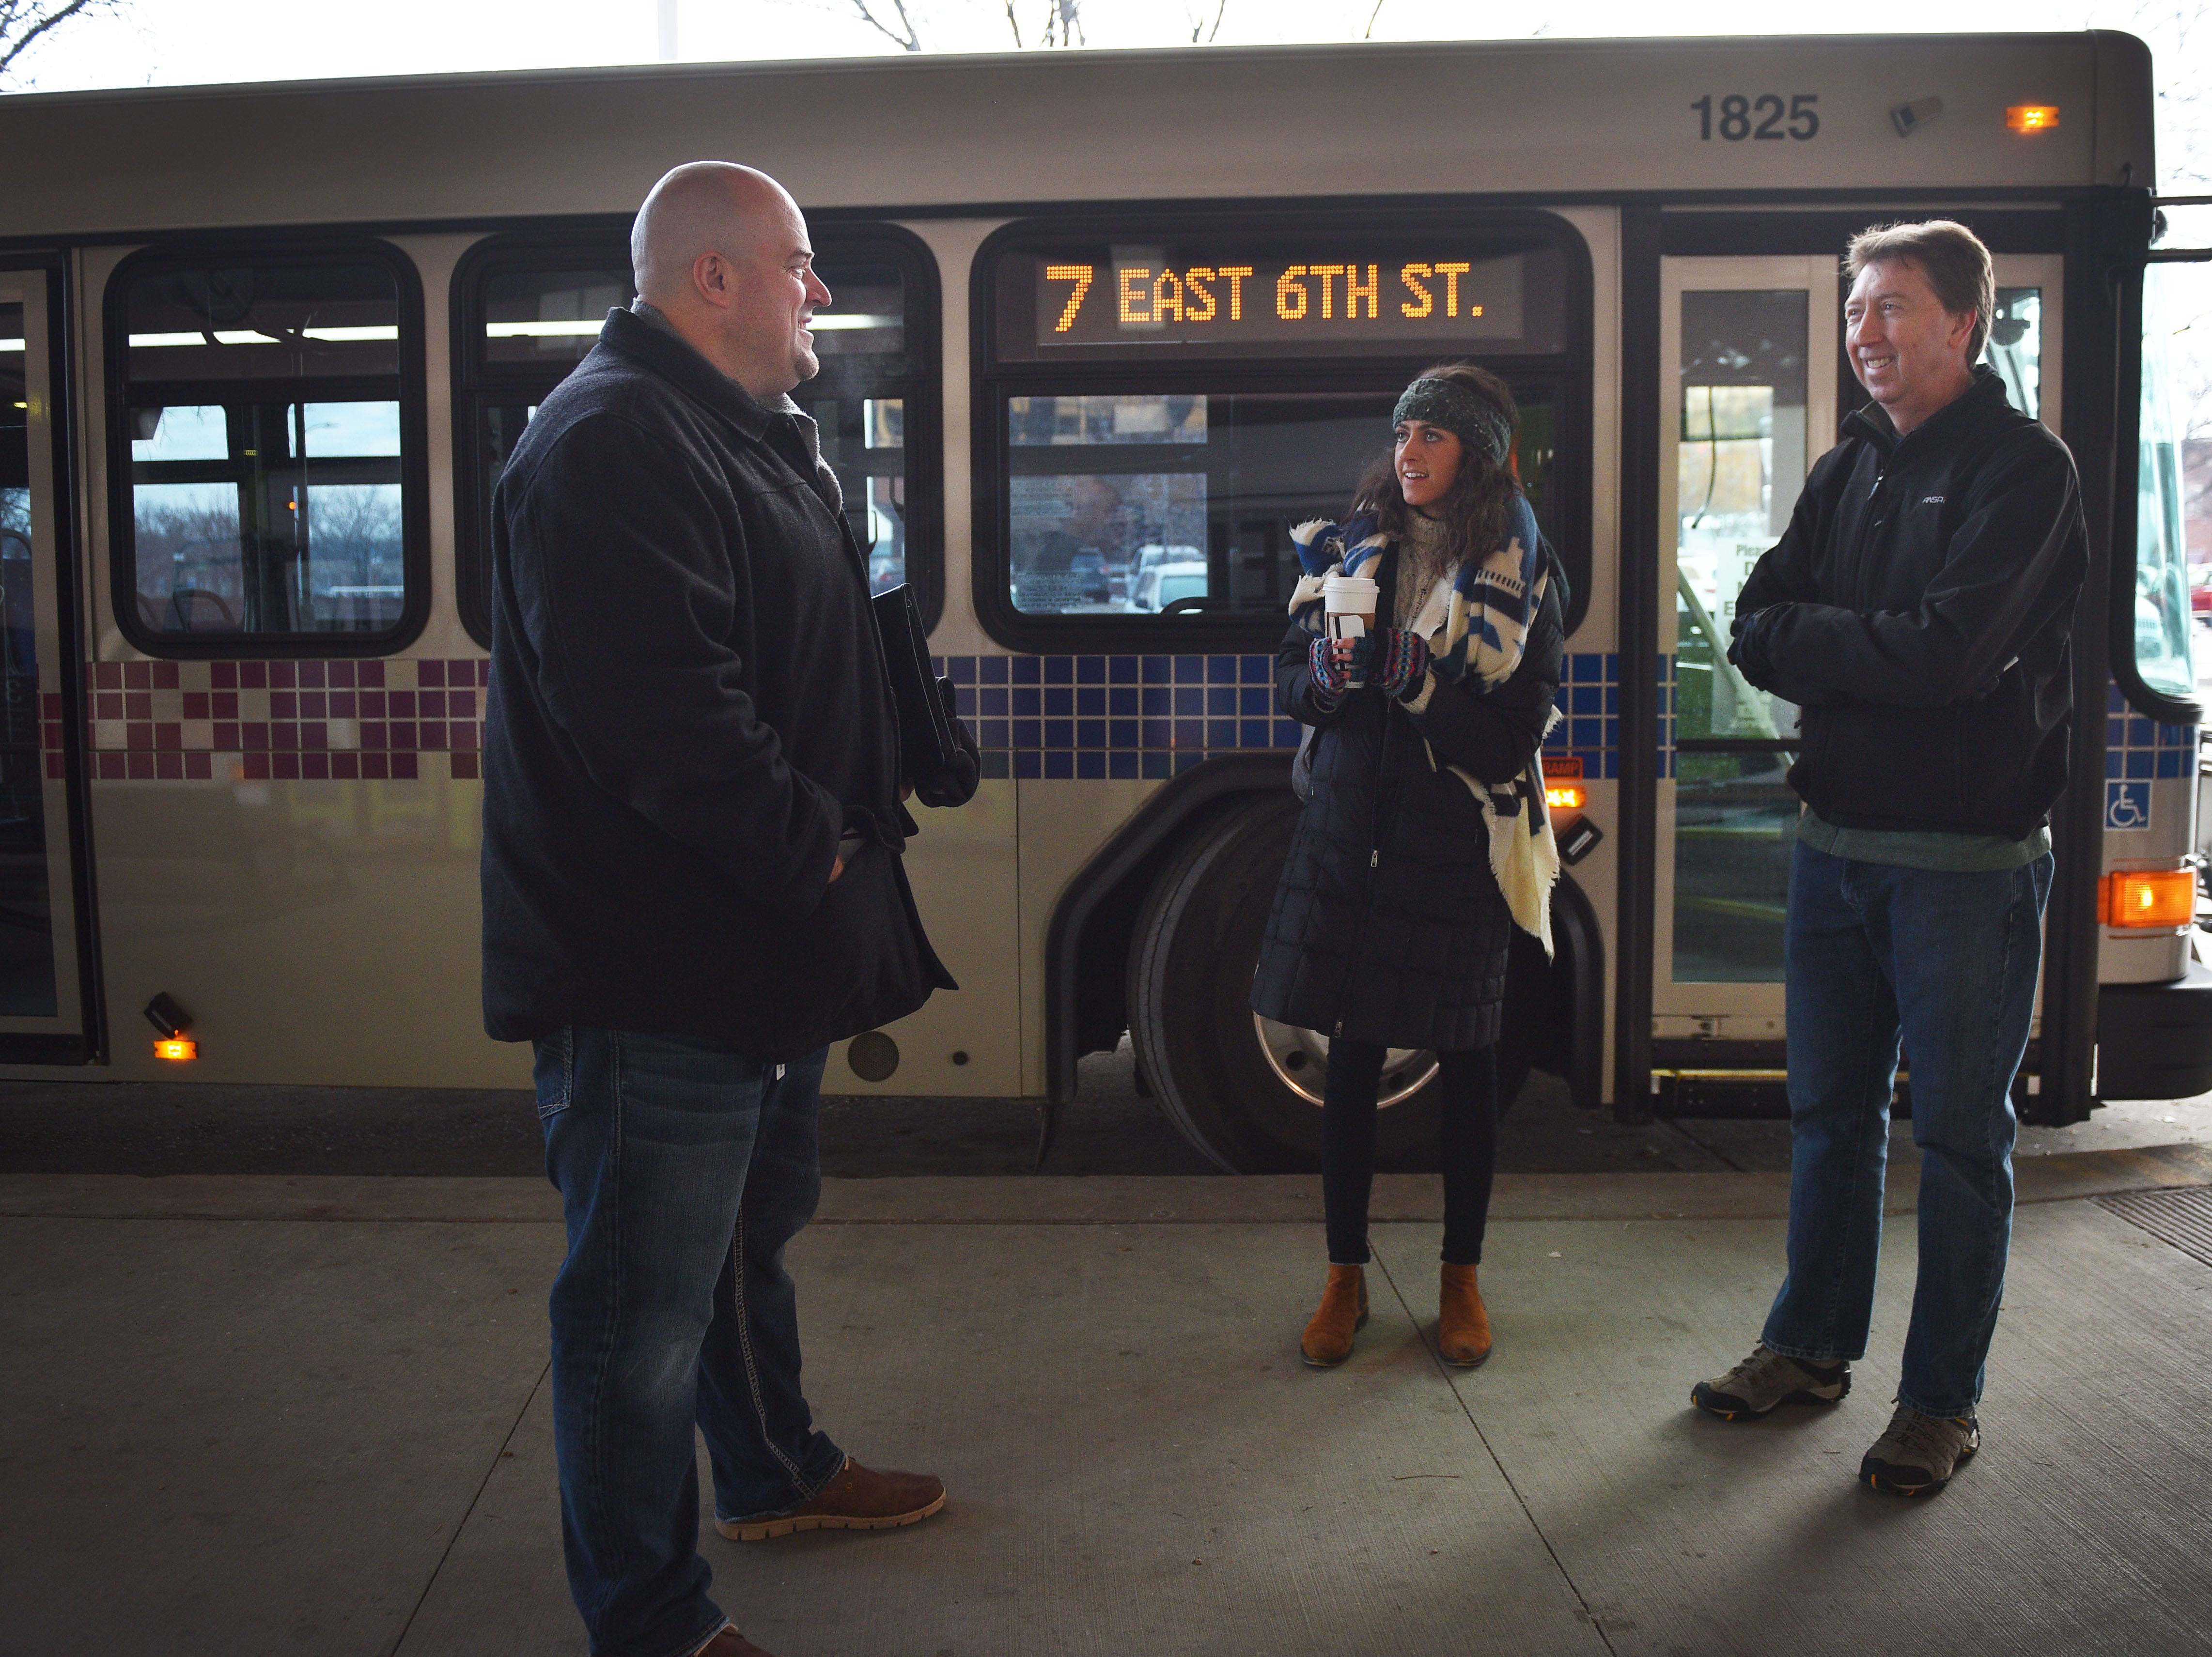 Innovation and technology director Jason Reisdorfer, from left, program Associate at Centre for Public Impact Paige Mcdermott and transportation planner Sam Trebilcock wait to get on a city bus Friday, Dec. 7, in Sioux Falls. Public transit costs taxpayers millions each year. That's why a task force has been set up to study the issue with assistance from staff at the Harvard Bloomberg Institute. A part of the task force's work is engaging bus riders and the general public, so members were at the bus depot at 9 a.m. Friday to talk to riders and ride the buses.